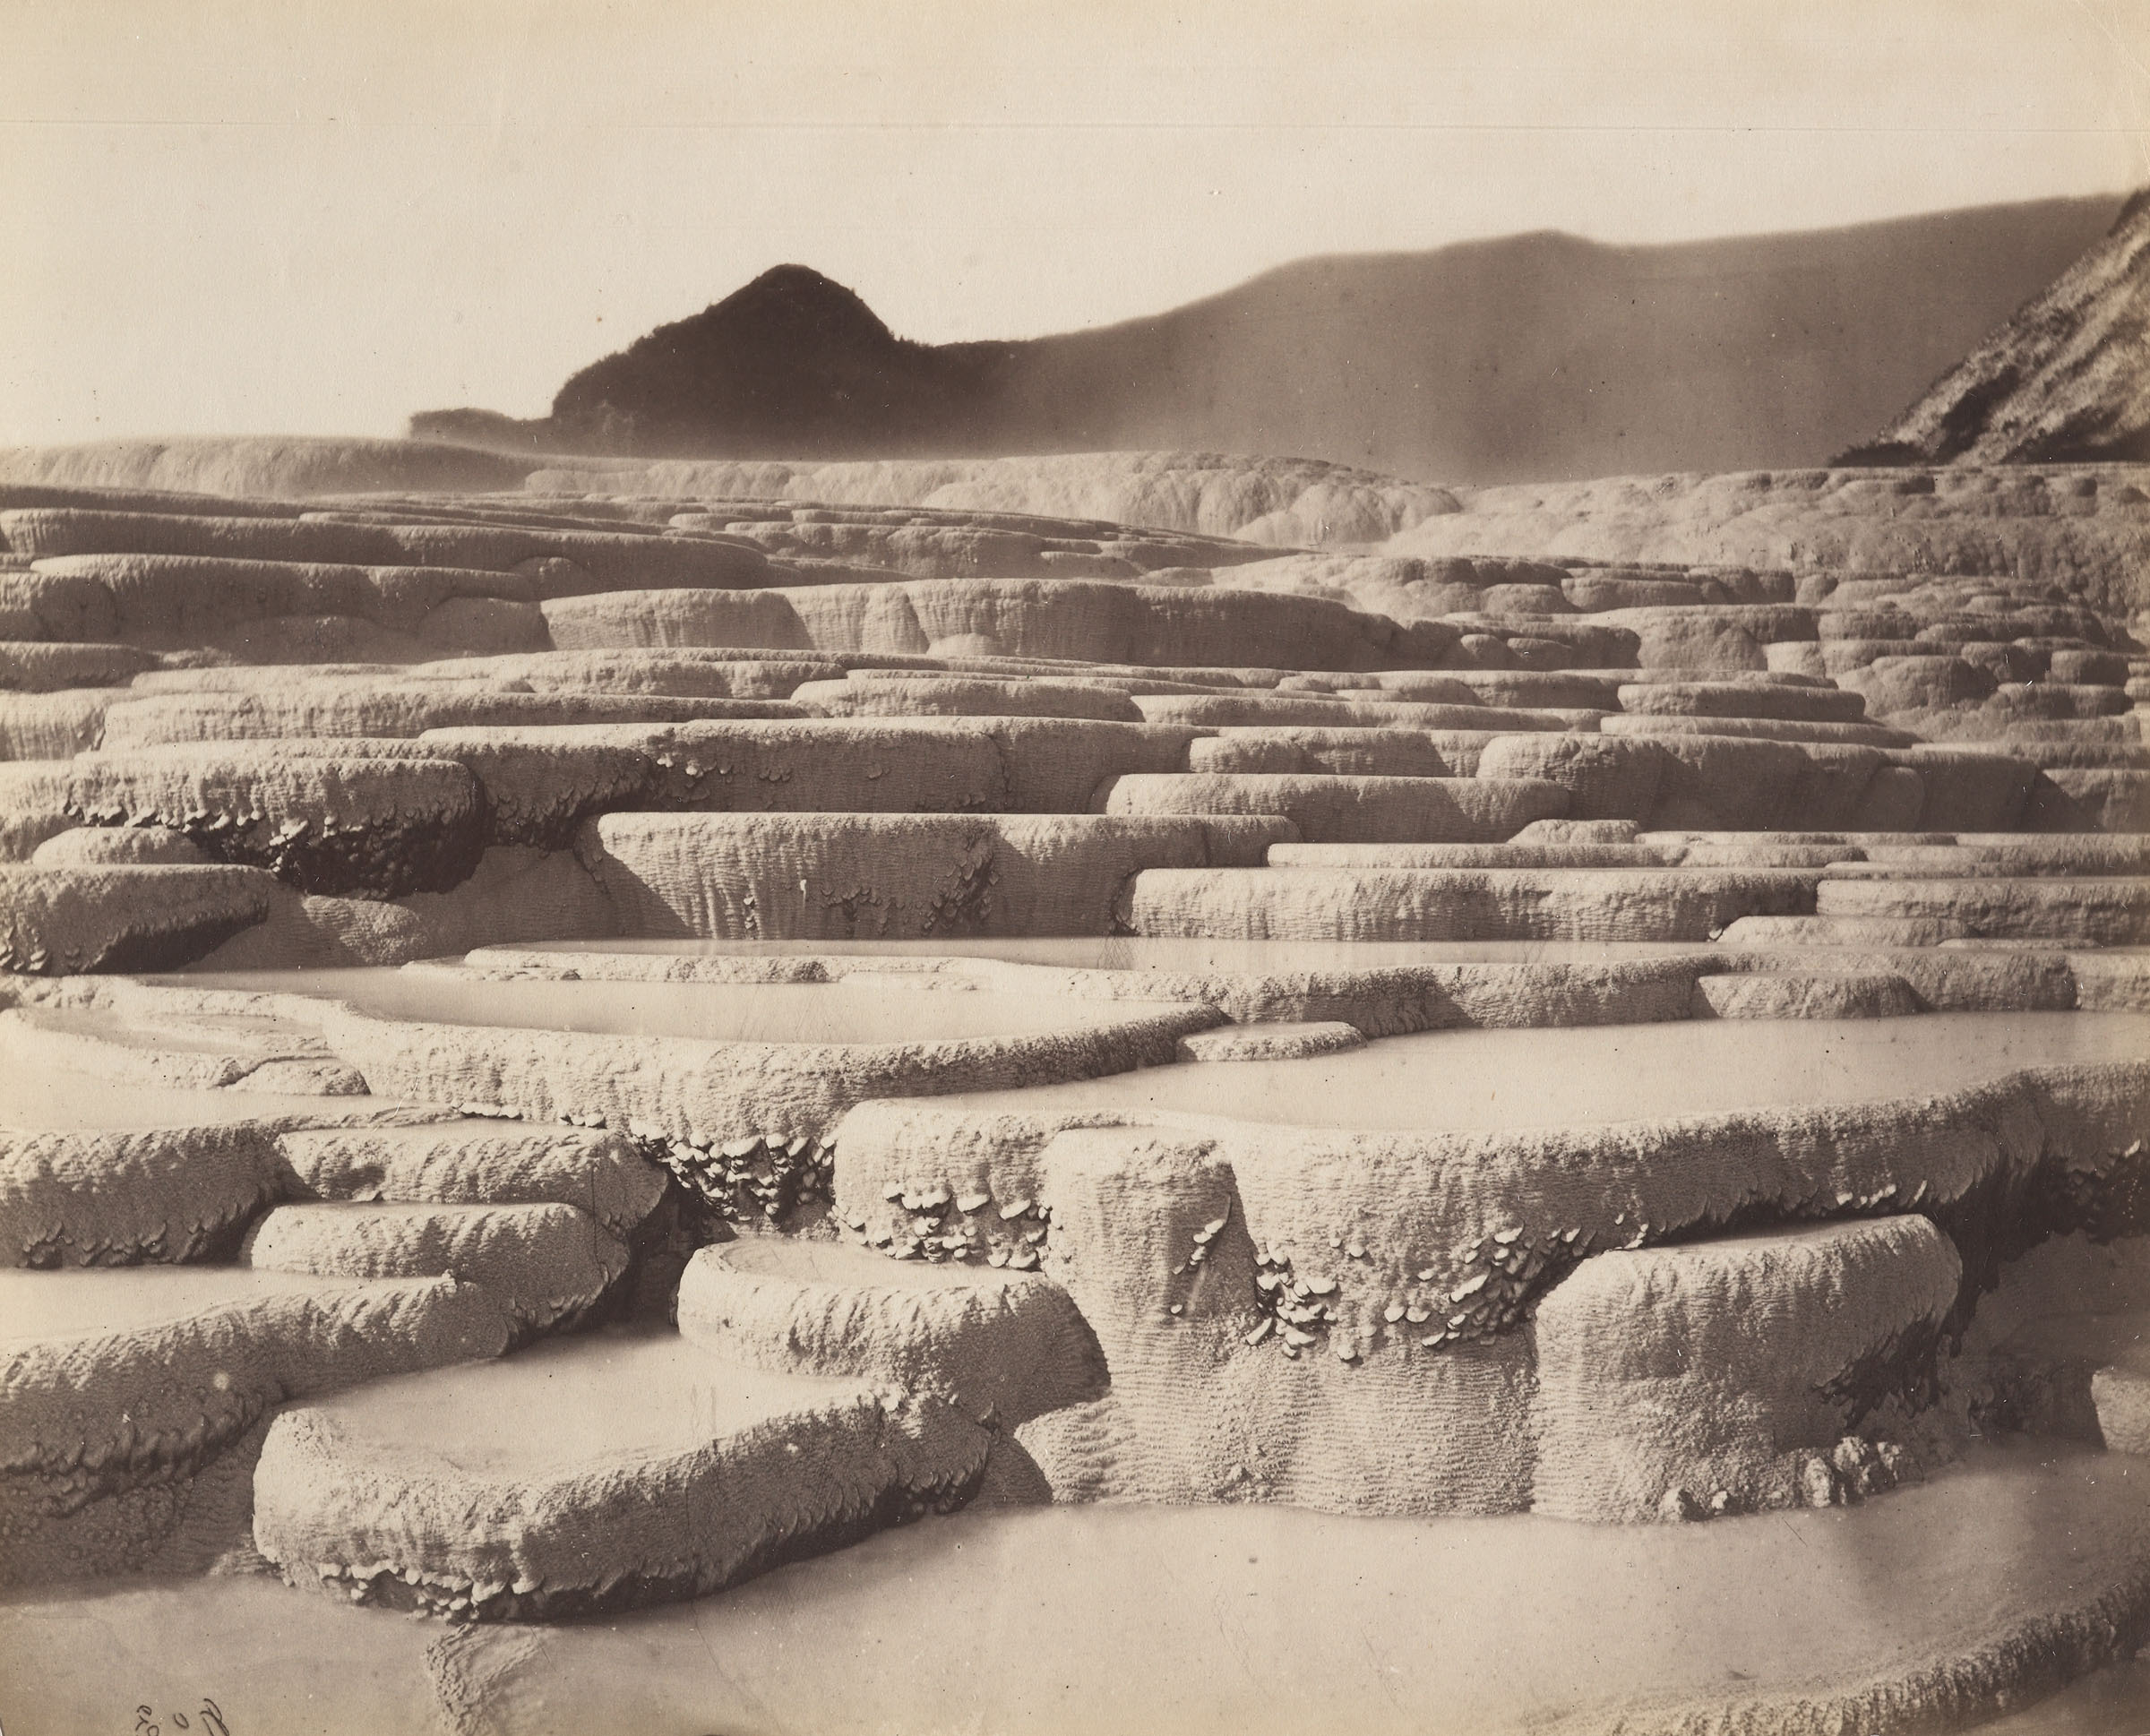 White terraces. Photo by Charles Spencer 1880 of the Te Papa Collections. Public domain.